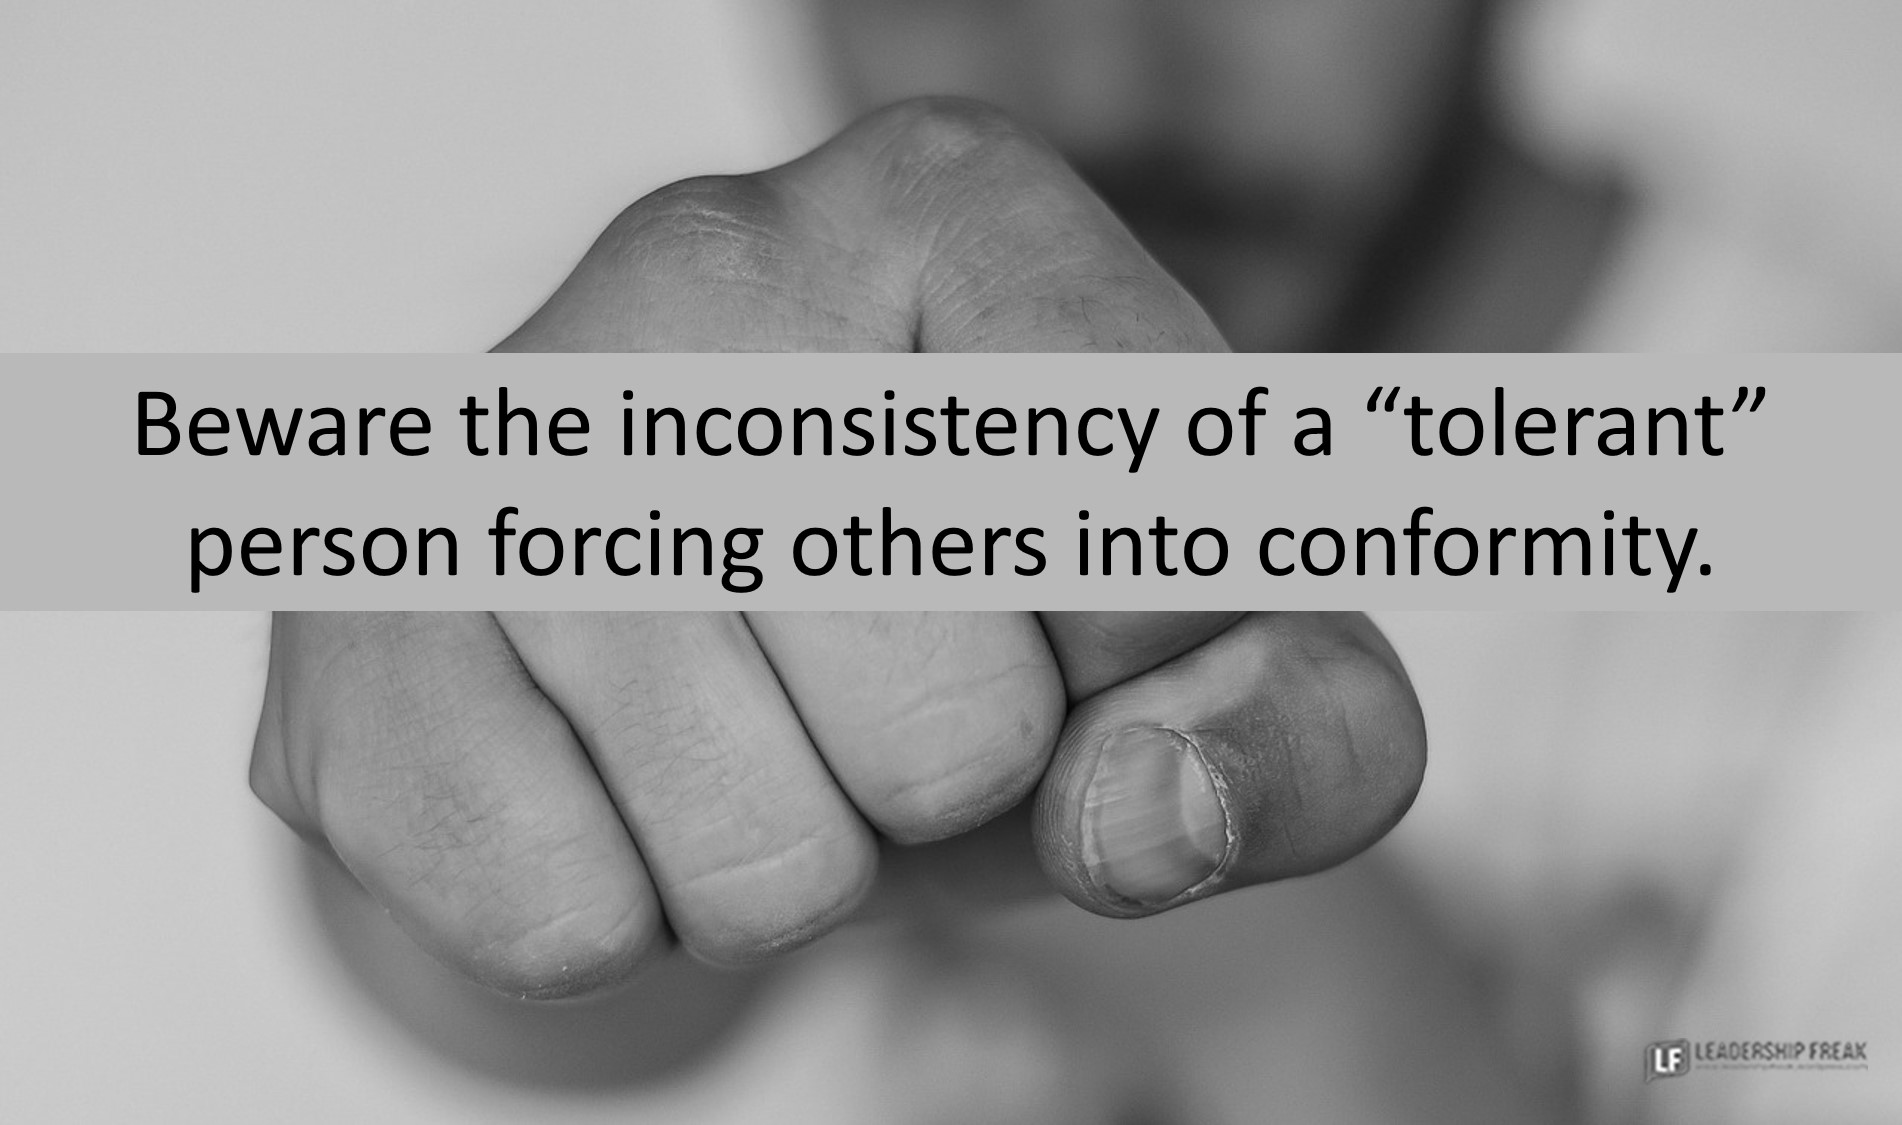 """Fist punching the screen.  Beware the inconsistency of a """"tolerant"""" person forcing others into conformity."""